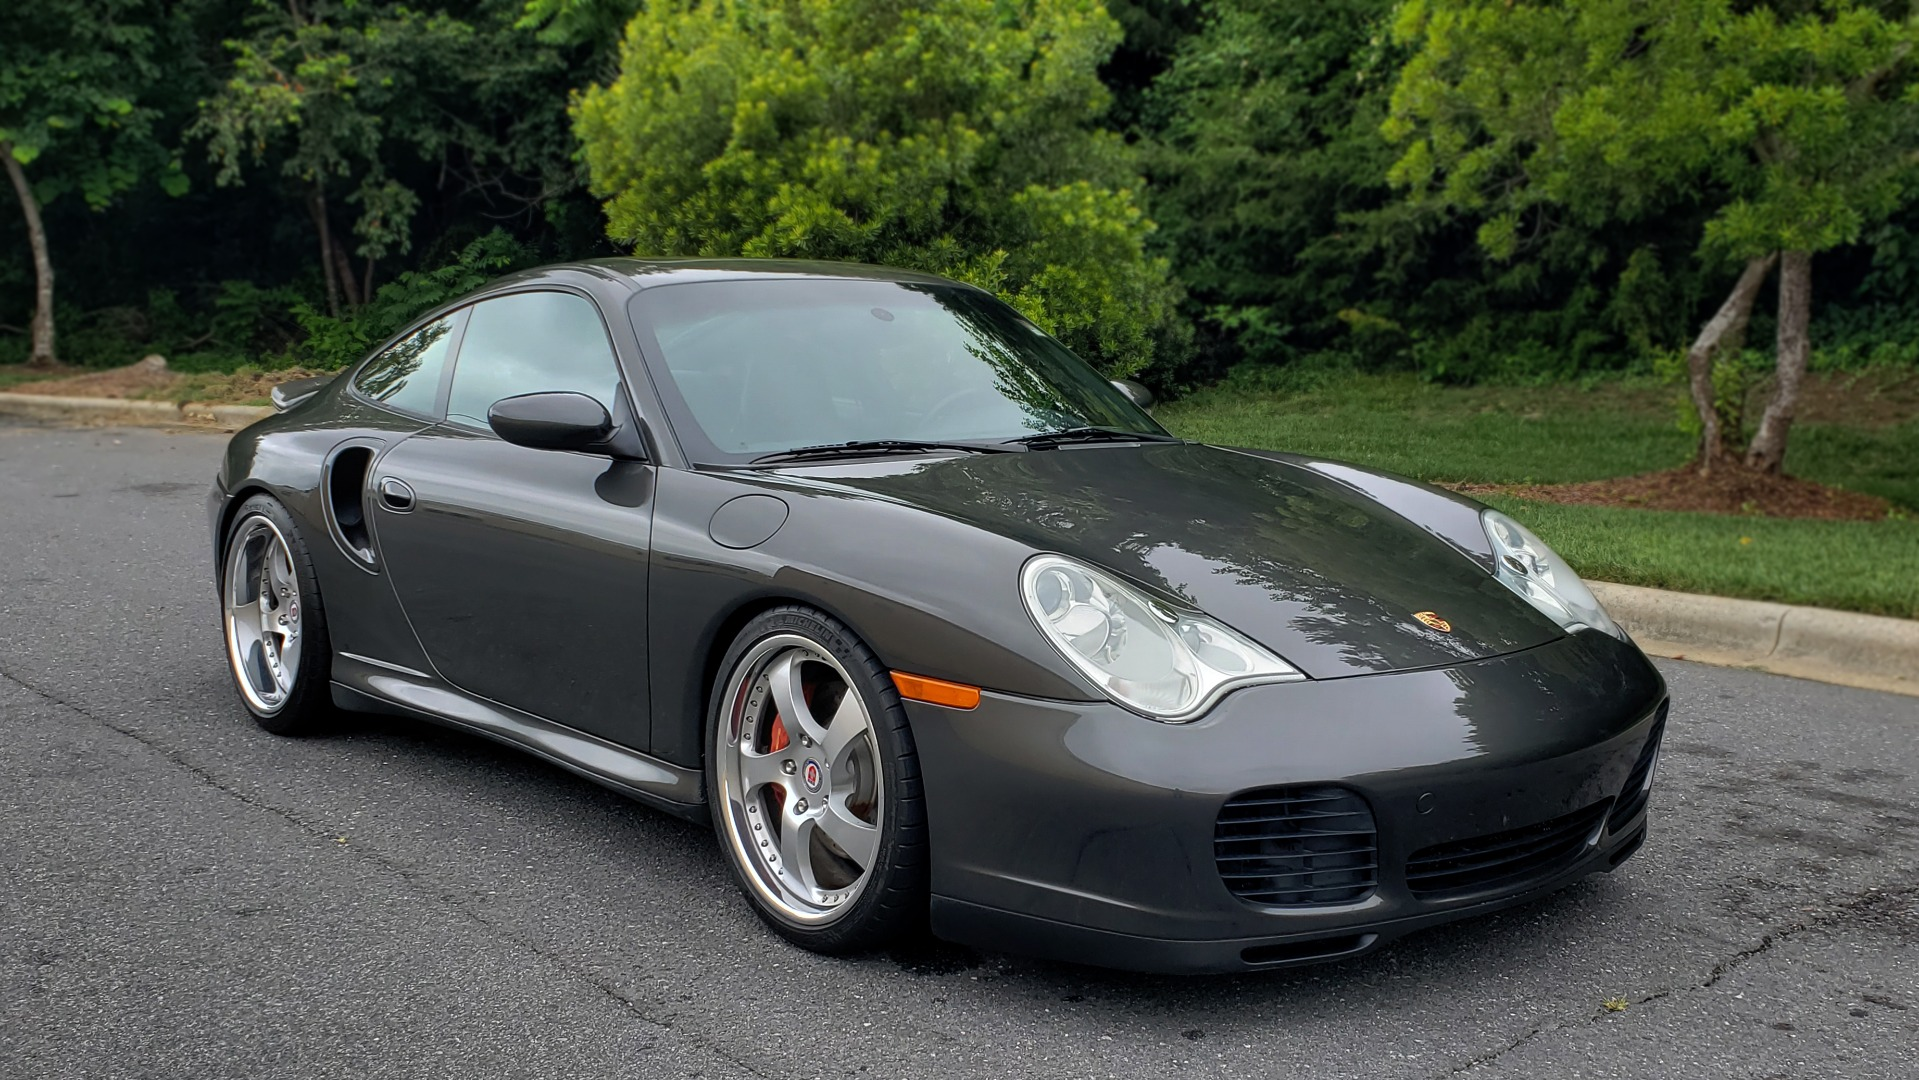 Used 2002 Porsche 911 CARRERA TURBO COUPE / 6-SPD MANUAL / PERF UPGRADES & CUSTOM TUNE for sale Sold at Formula Imports in Charlotte NC 28227 6